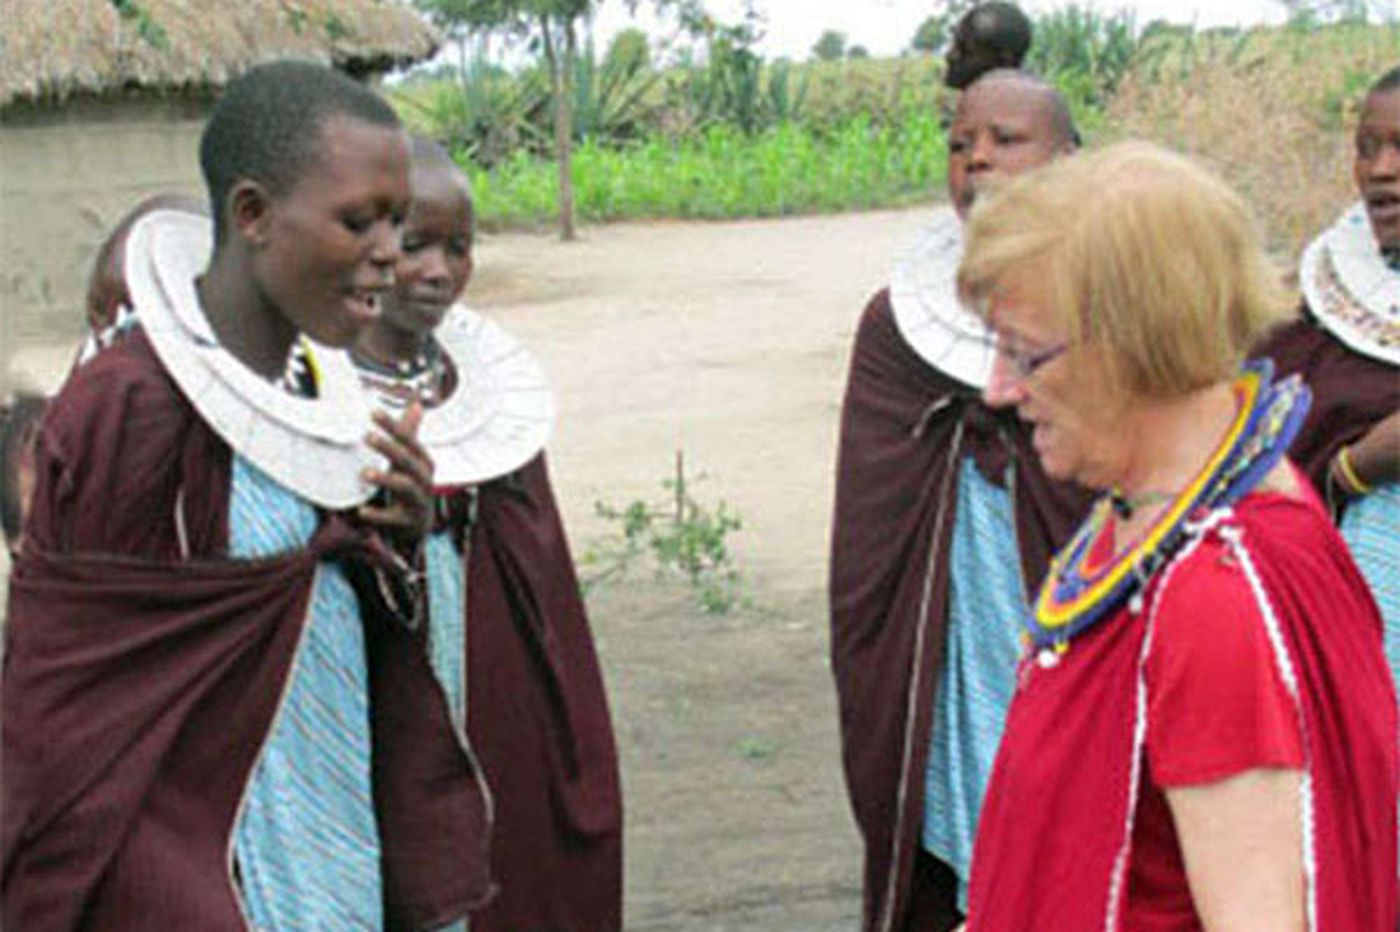 Personal Journey: In a Masai village, a day of wonderful work